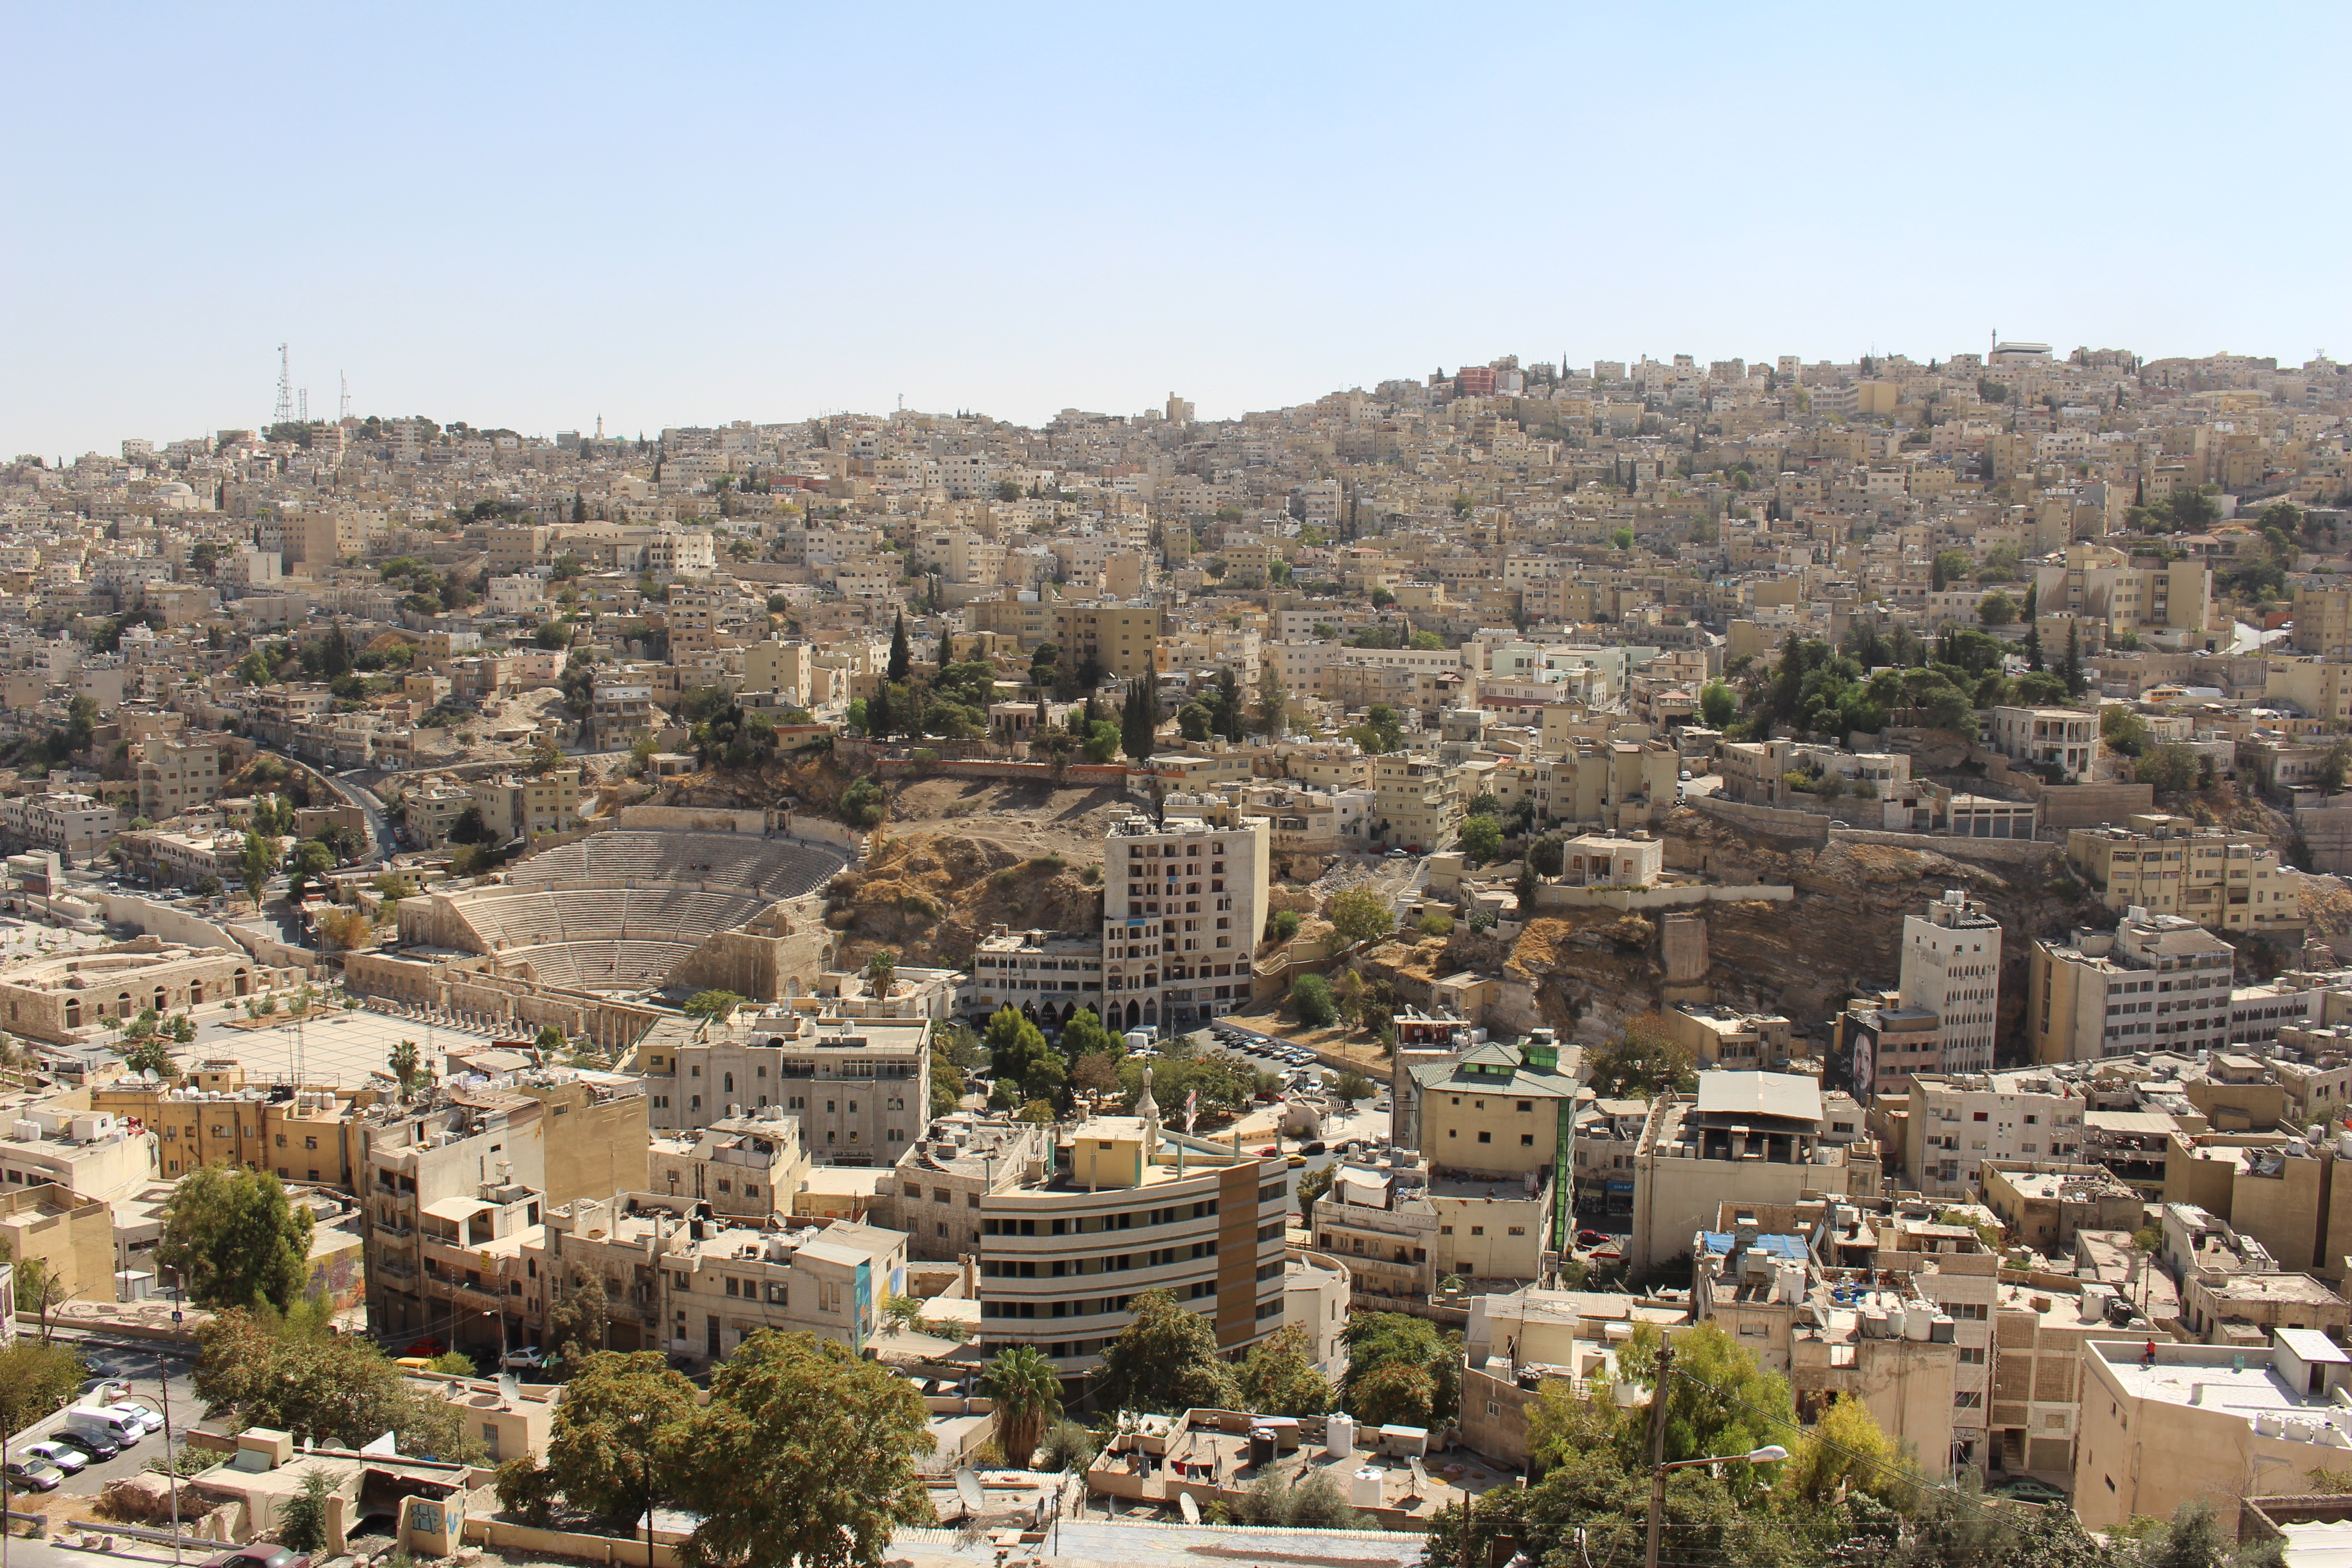 The capital of Jordan is Amman. Amman is a busy city with buildings that stretch almost as far as the eye can see. The buildings almost melt into the hills in varying degrees of beige and brown.